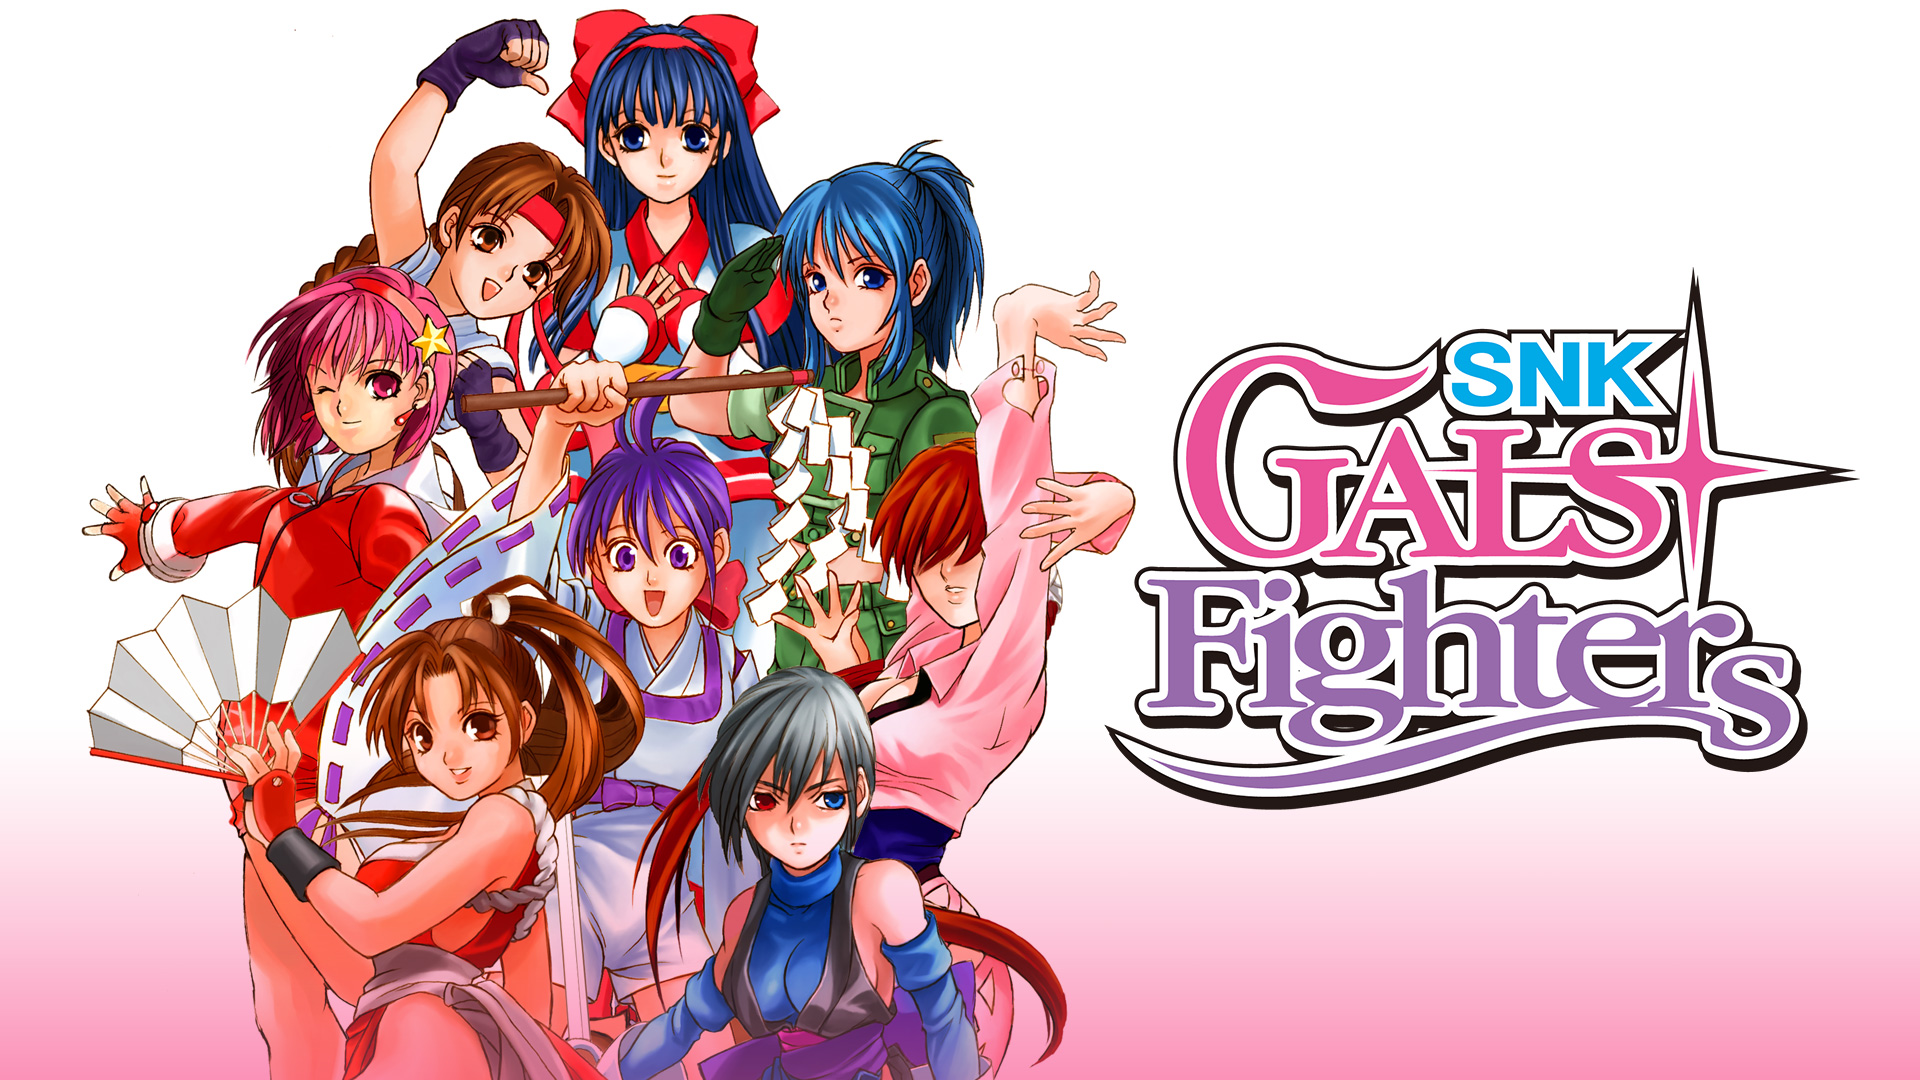 SNK Gals Fighters Topo Banner